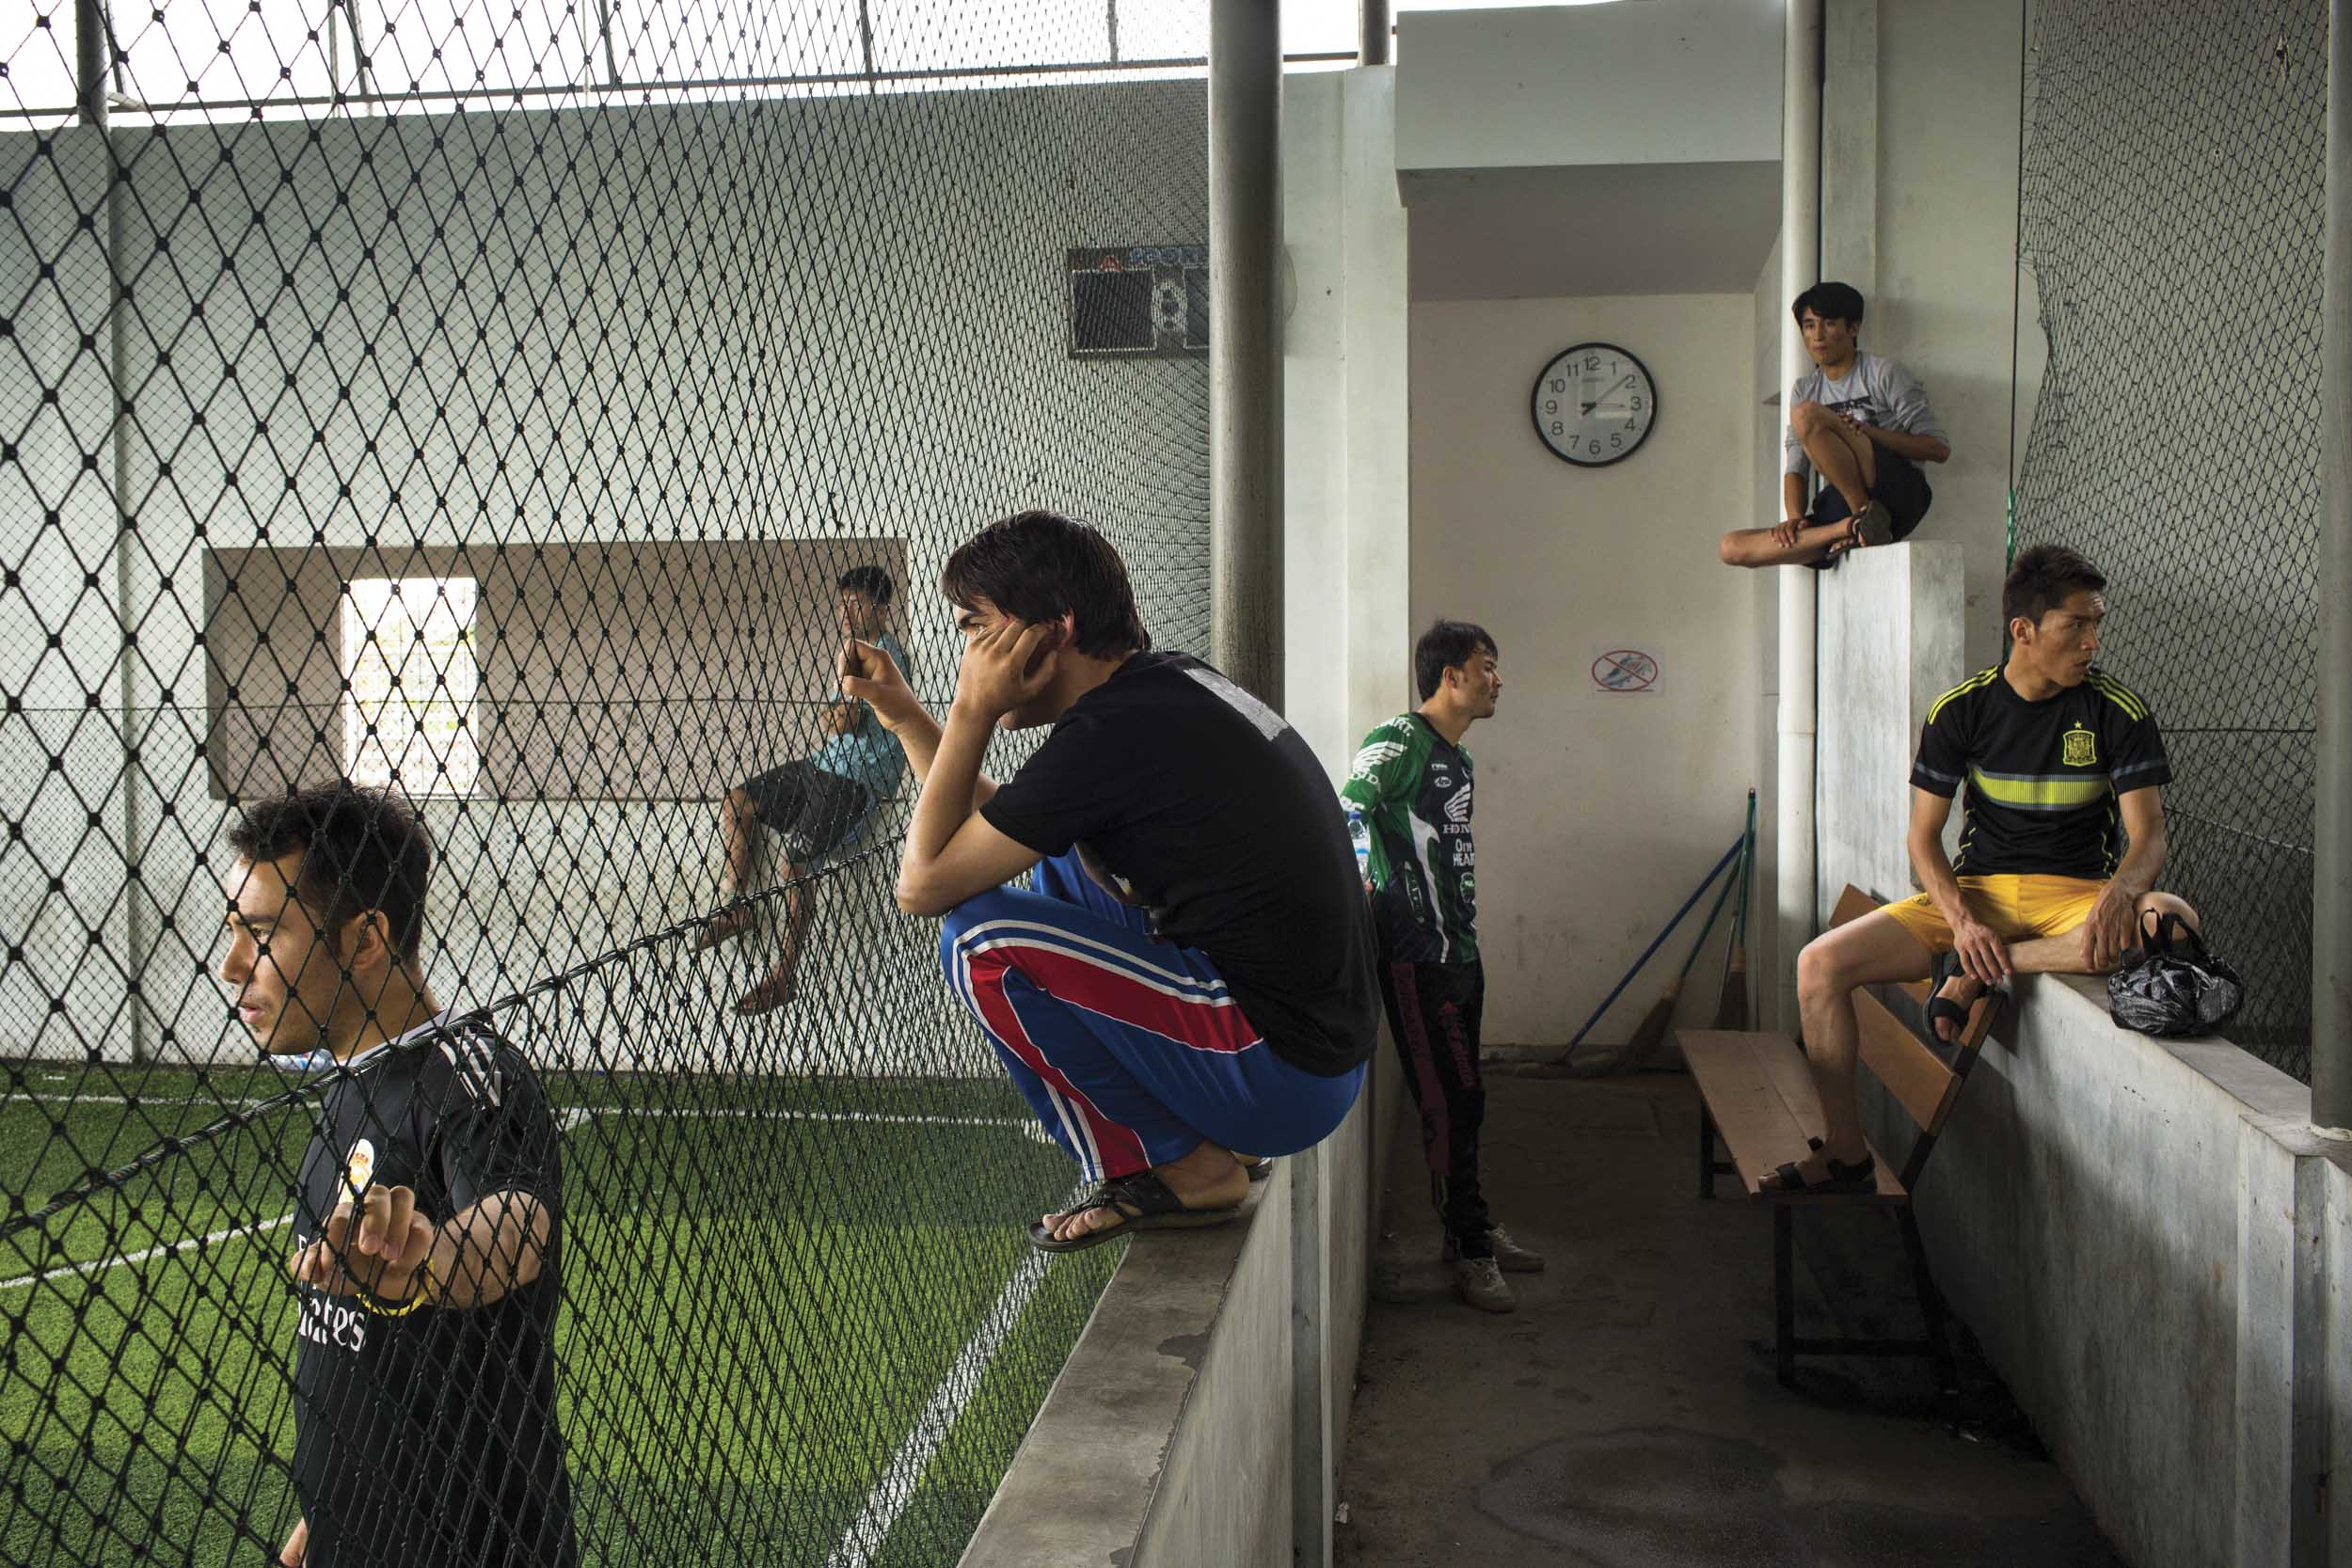 Cisarua, West Java, Indonesia. Hazara asylum seekers at the local indoor soccer pitch in Cisarua.